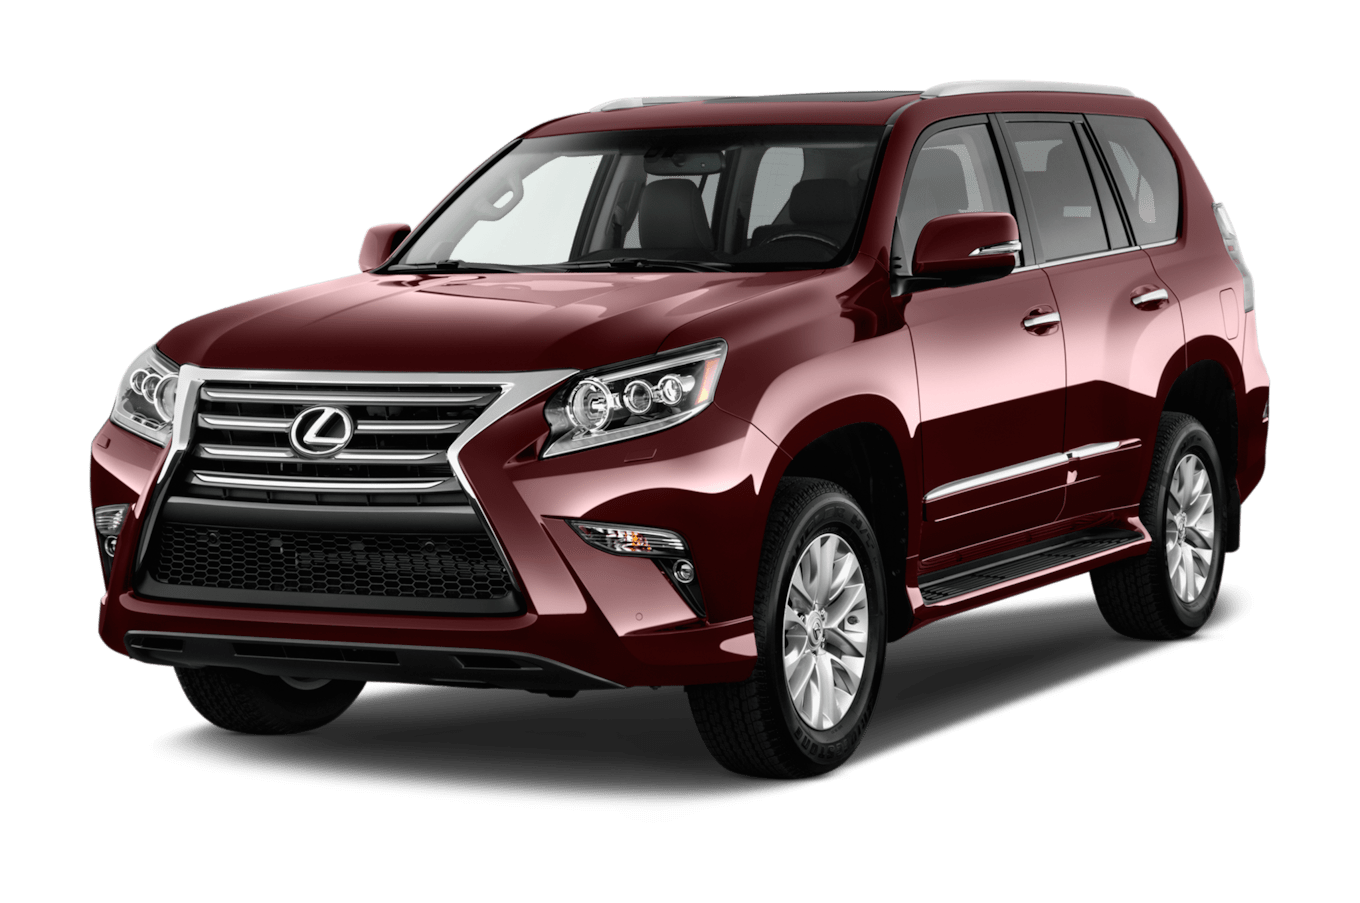 2014 Lexus GX460 Reviews and Rating